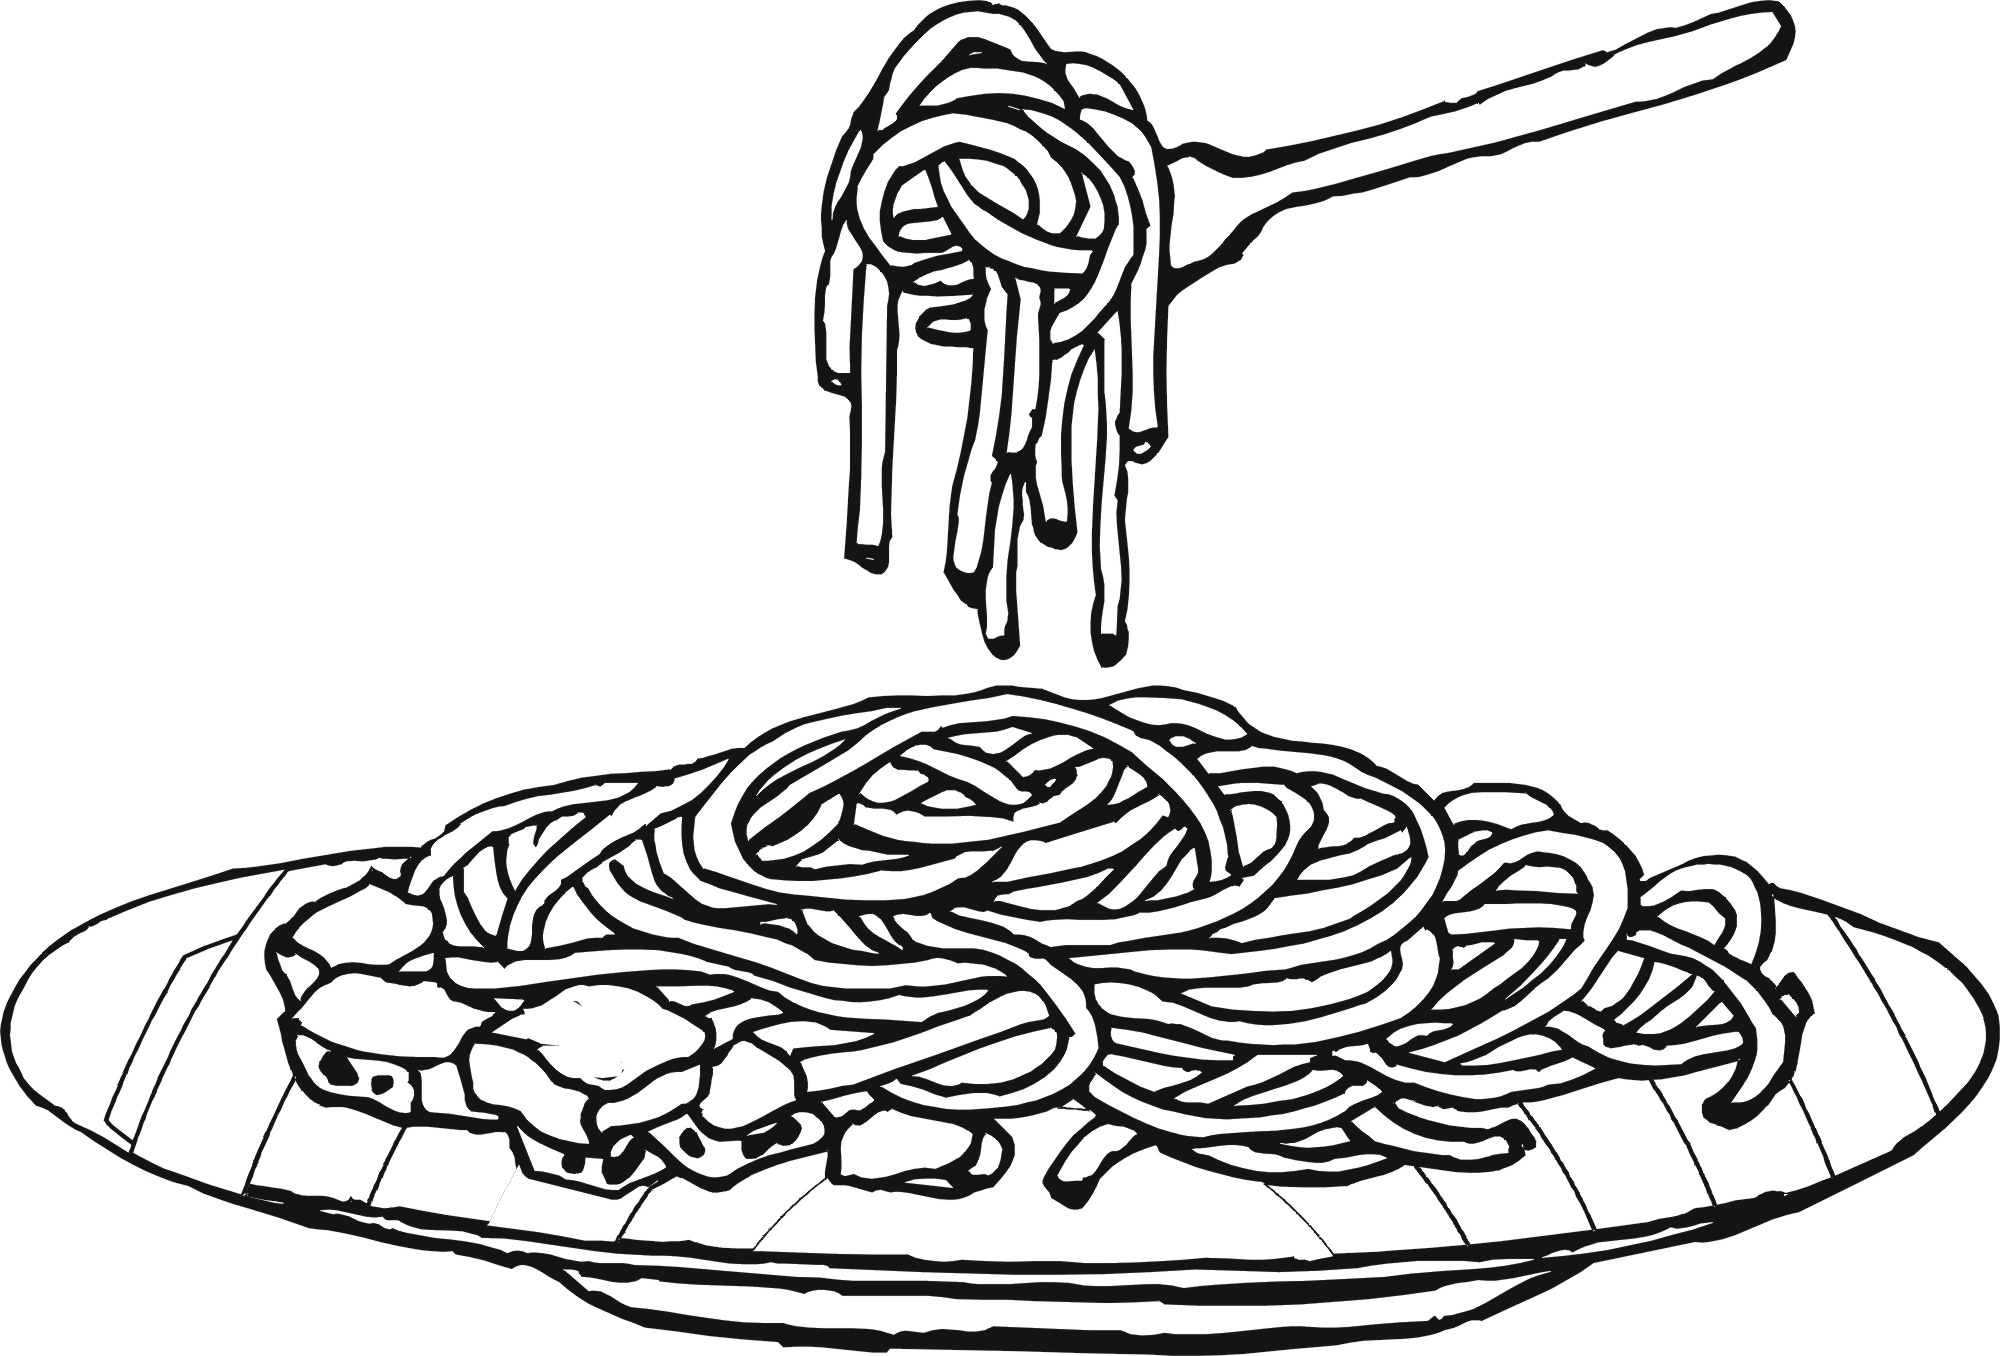 2000x1356 Pasta Coloring Pages